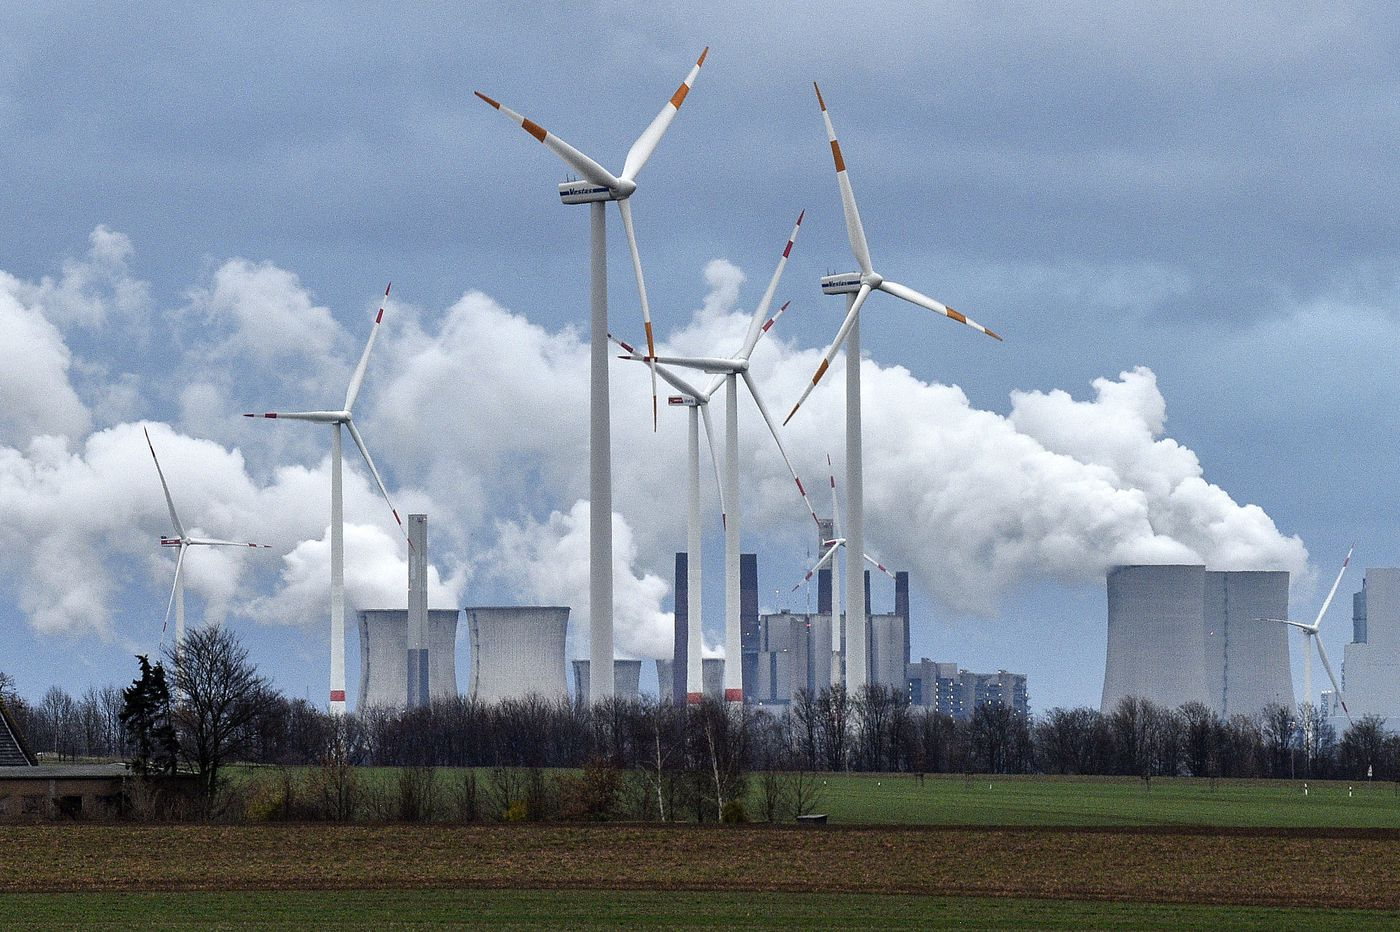 Climate talks pause as battle over key science report looms